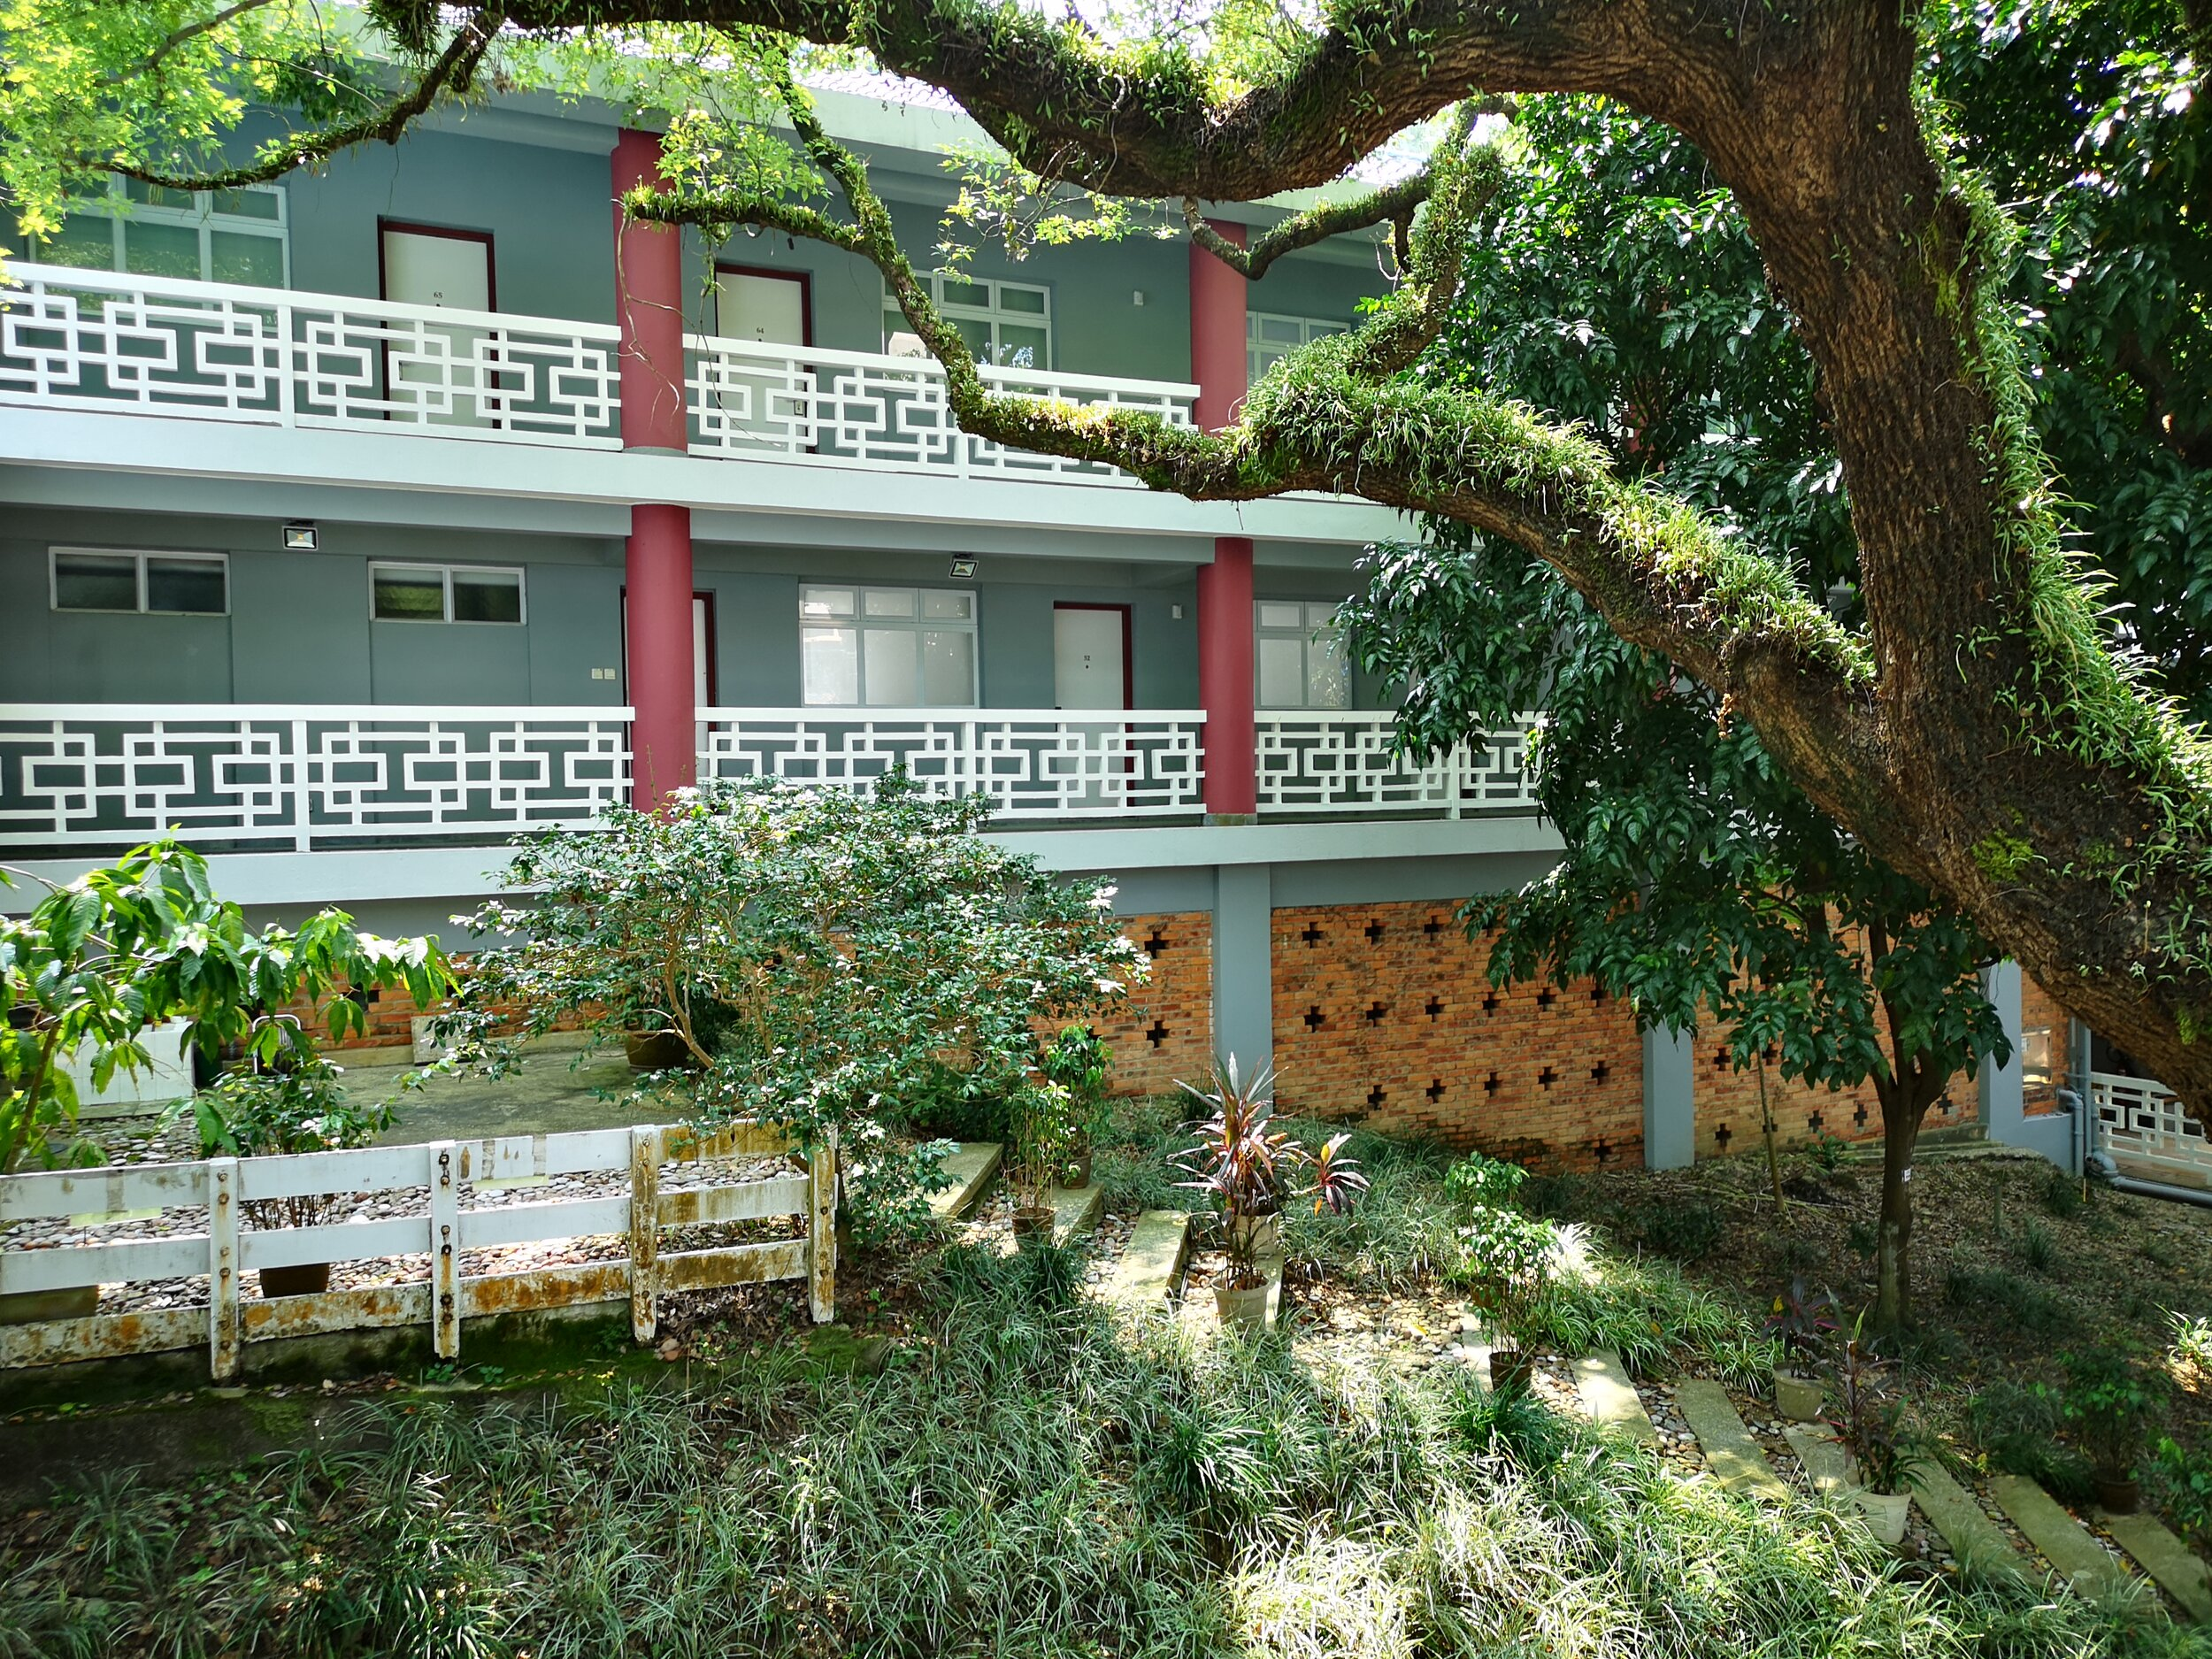 This year I stayed again in the Robert Black College Guest House on the campus of The University of Hong Kong. It is a rustique but quiet place, secluded from the Buzz of Hong Kong.